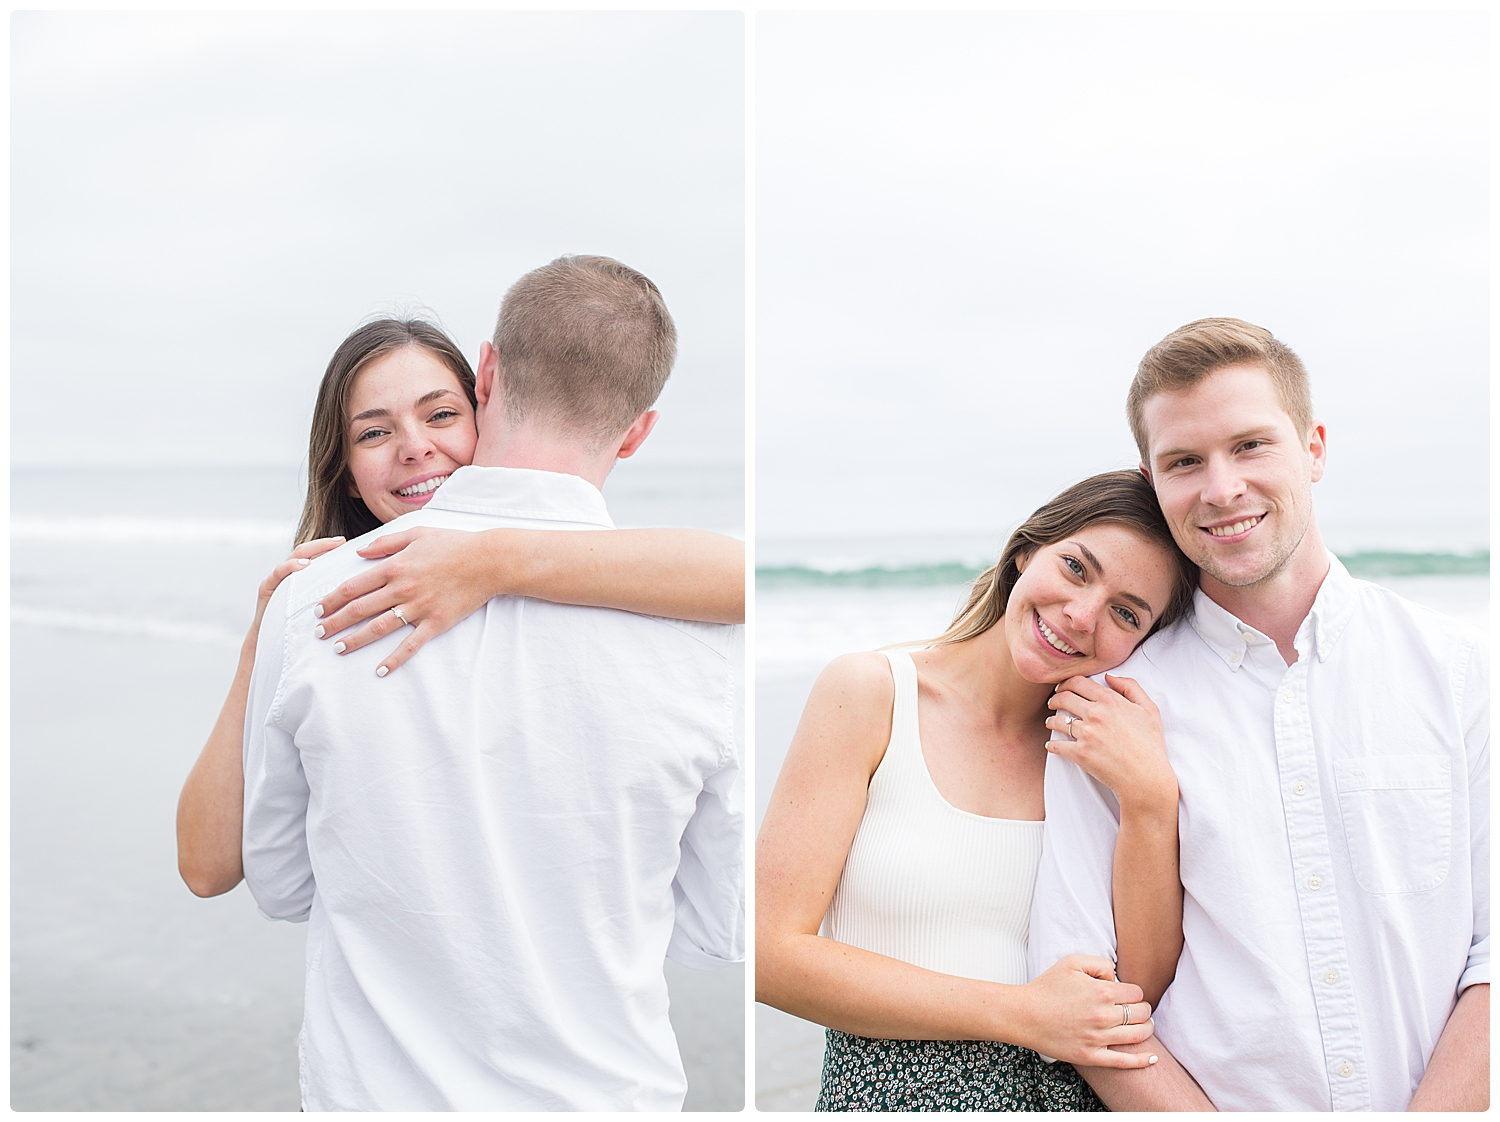 061919_EthanEmma_proposal_Renoda Campbell Photography-7250.jpg